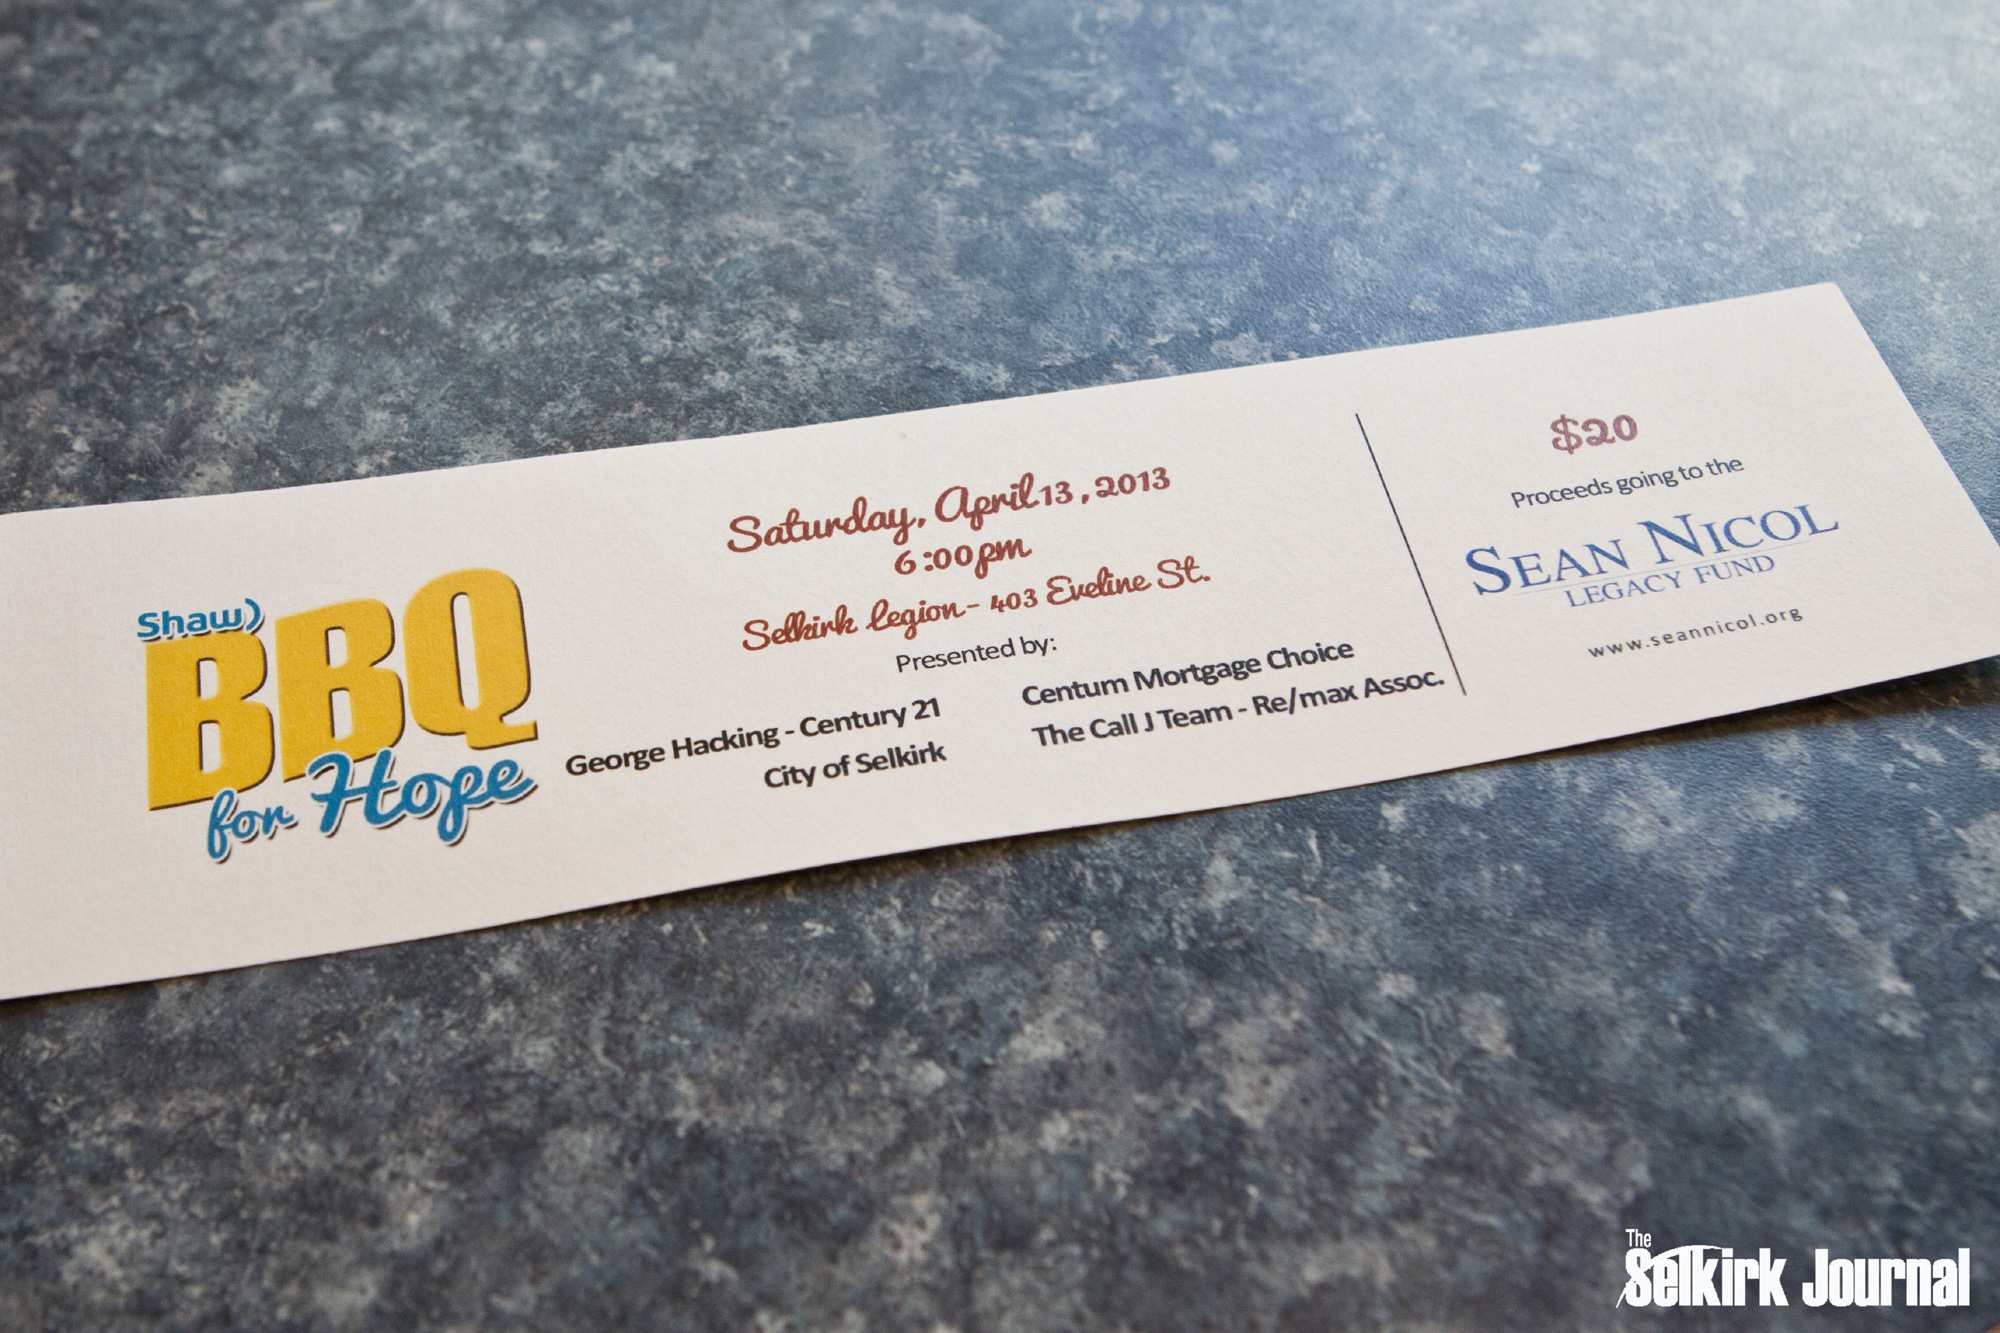 A hot commodity! Ticket to the sold out 2013 Shaw BBQ for Hope Fundraiser!